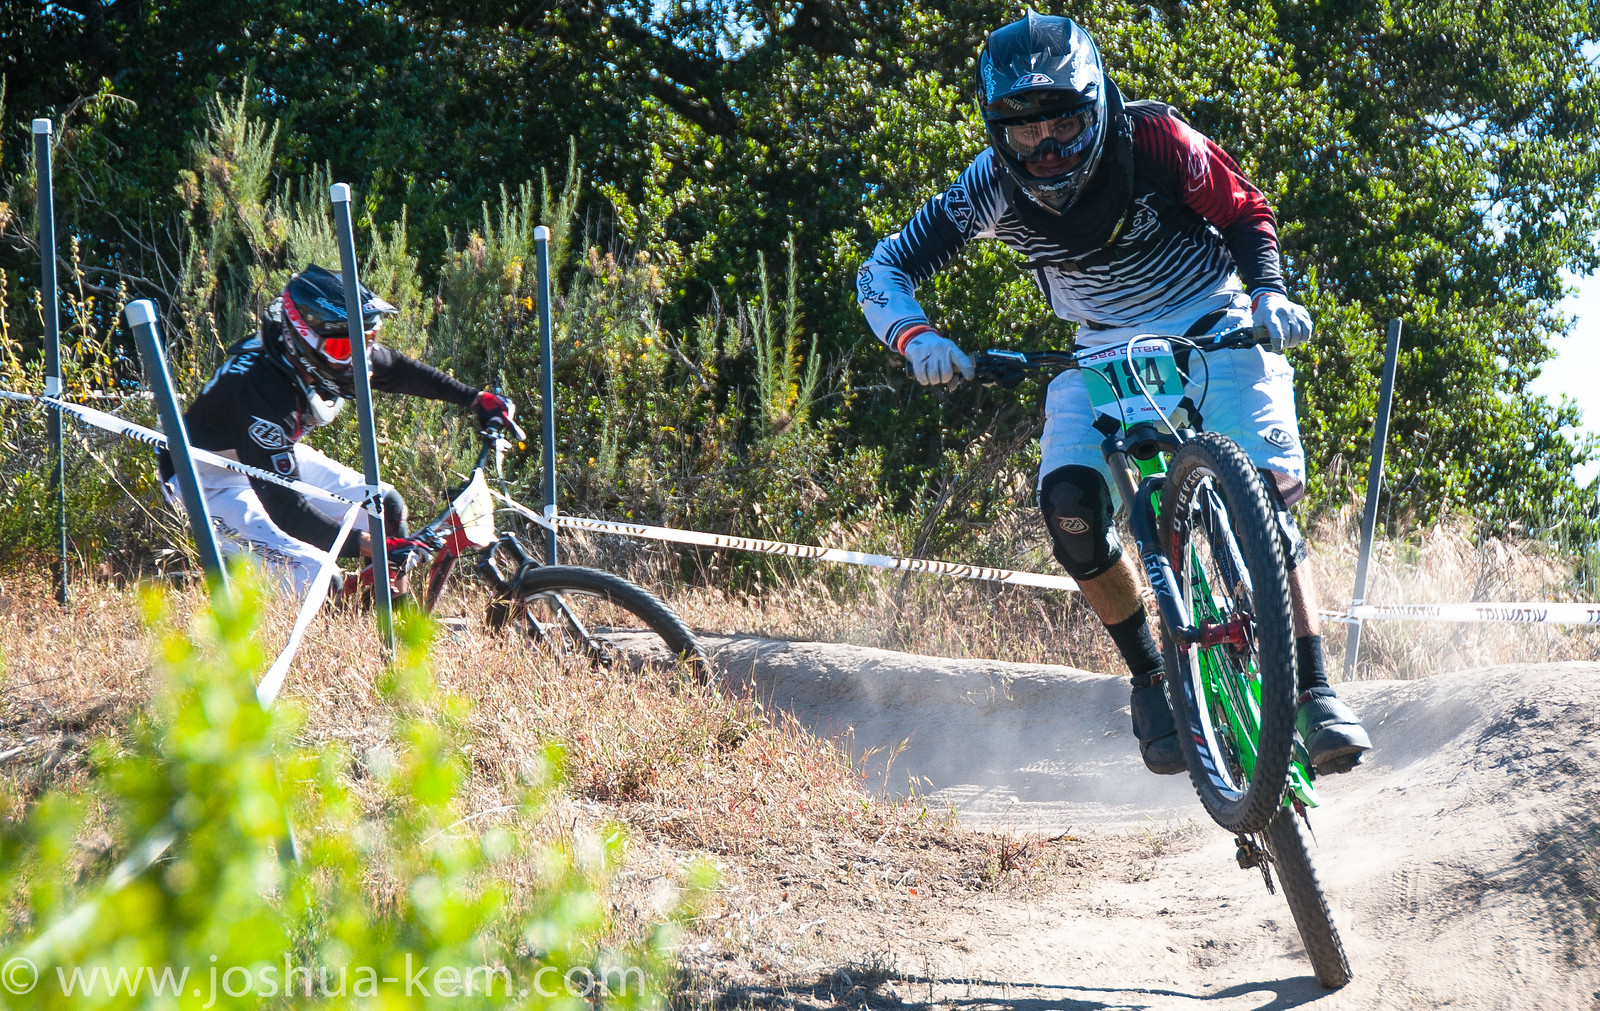 Pinned (1 of 1) - jkern620 - Mountain Biking Pictures - Vital MTB